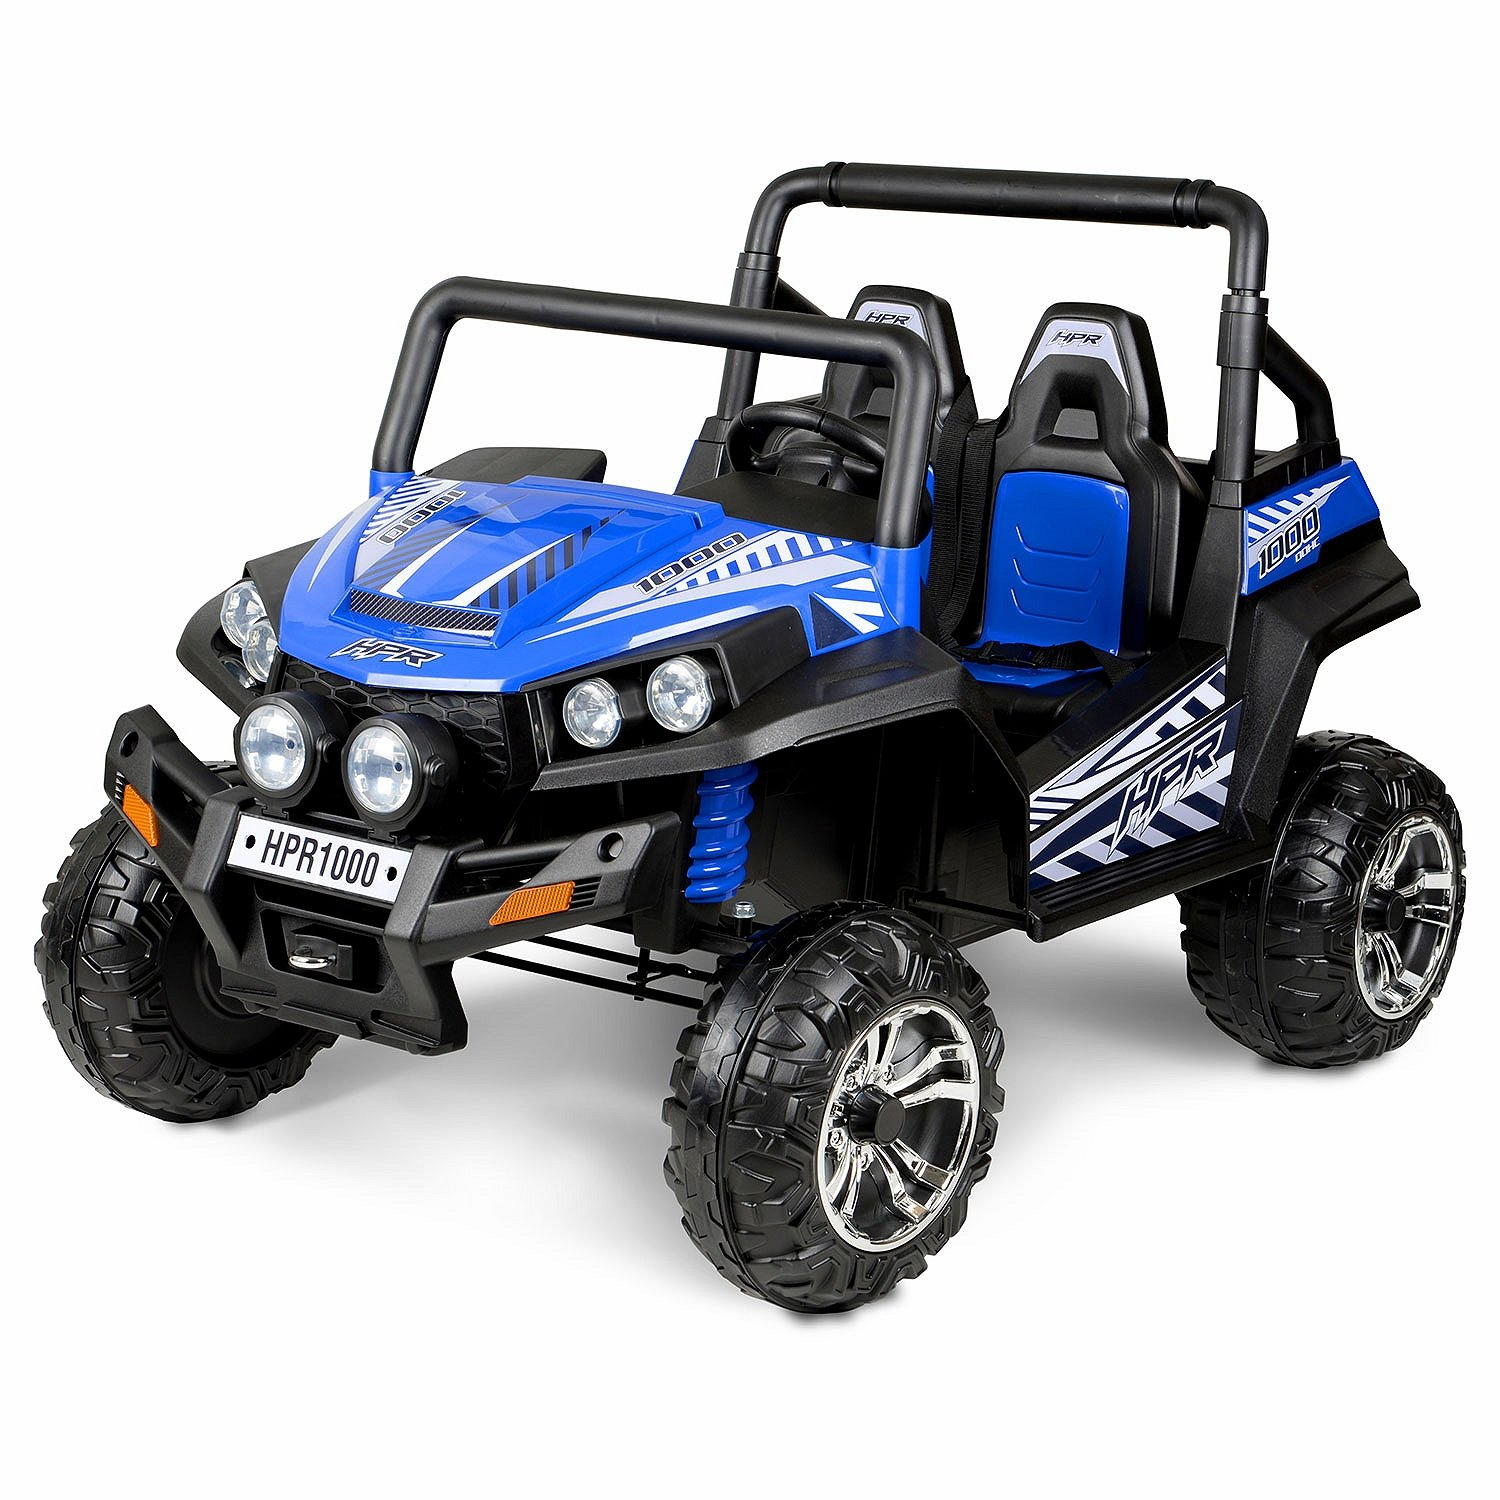 HPR-1000 12-Volt Ride-On Vehicle